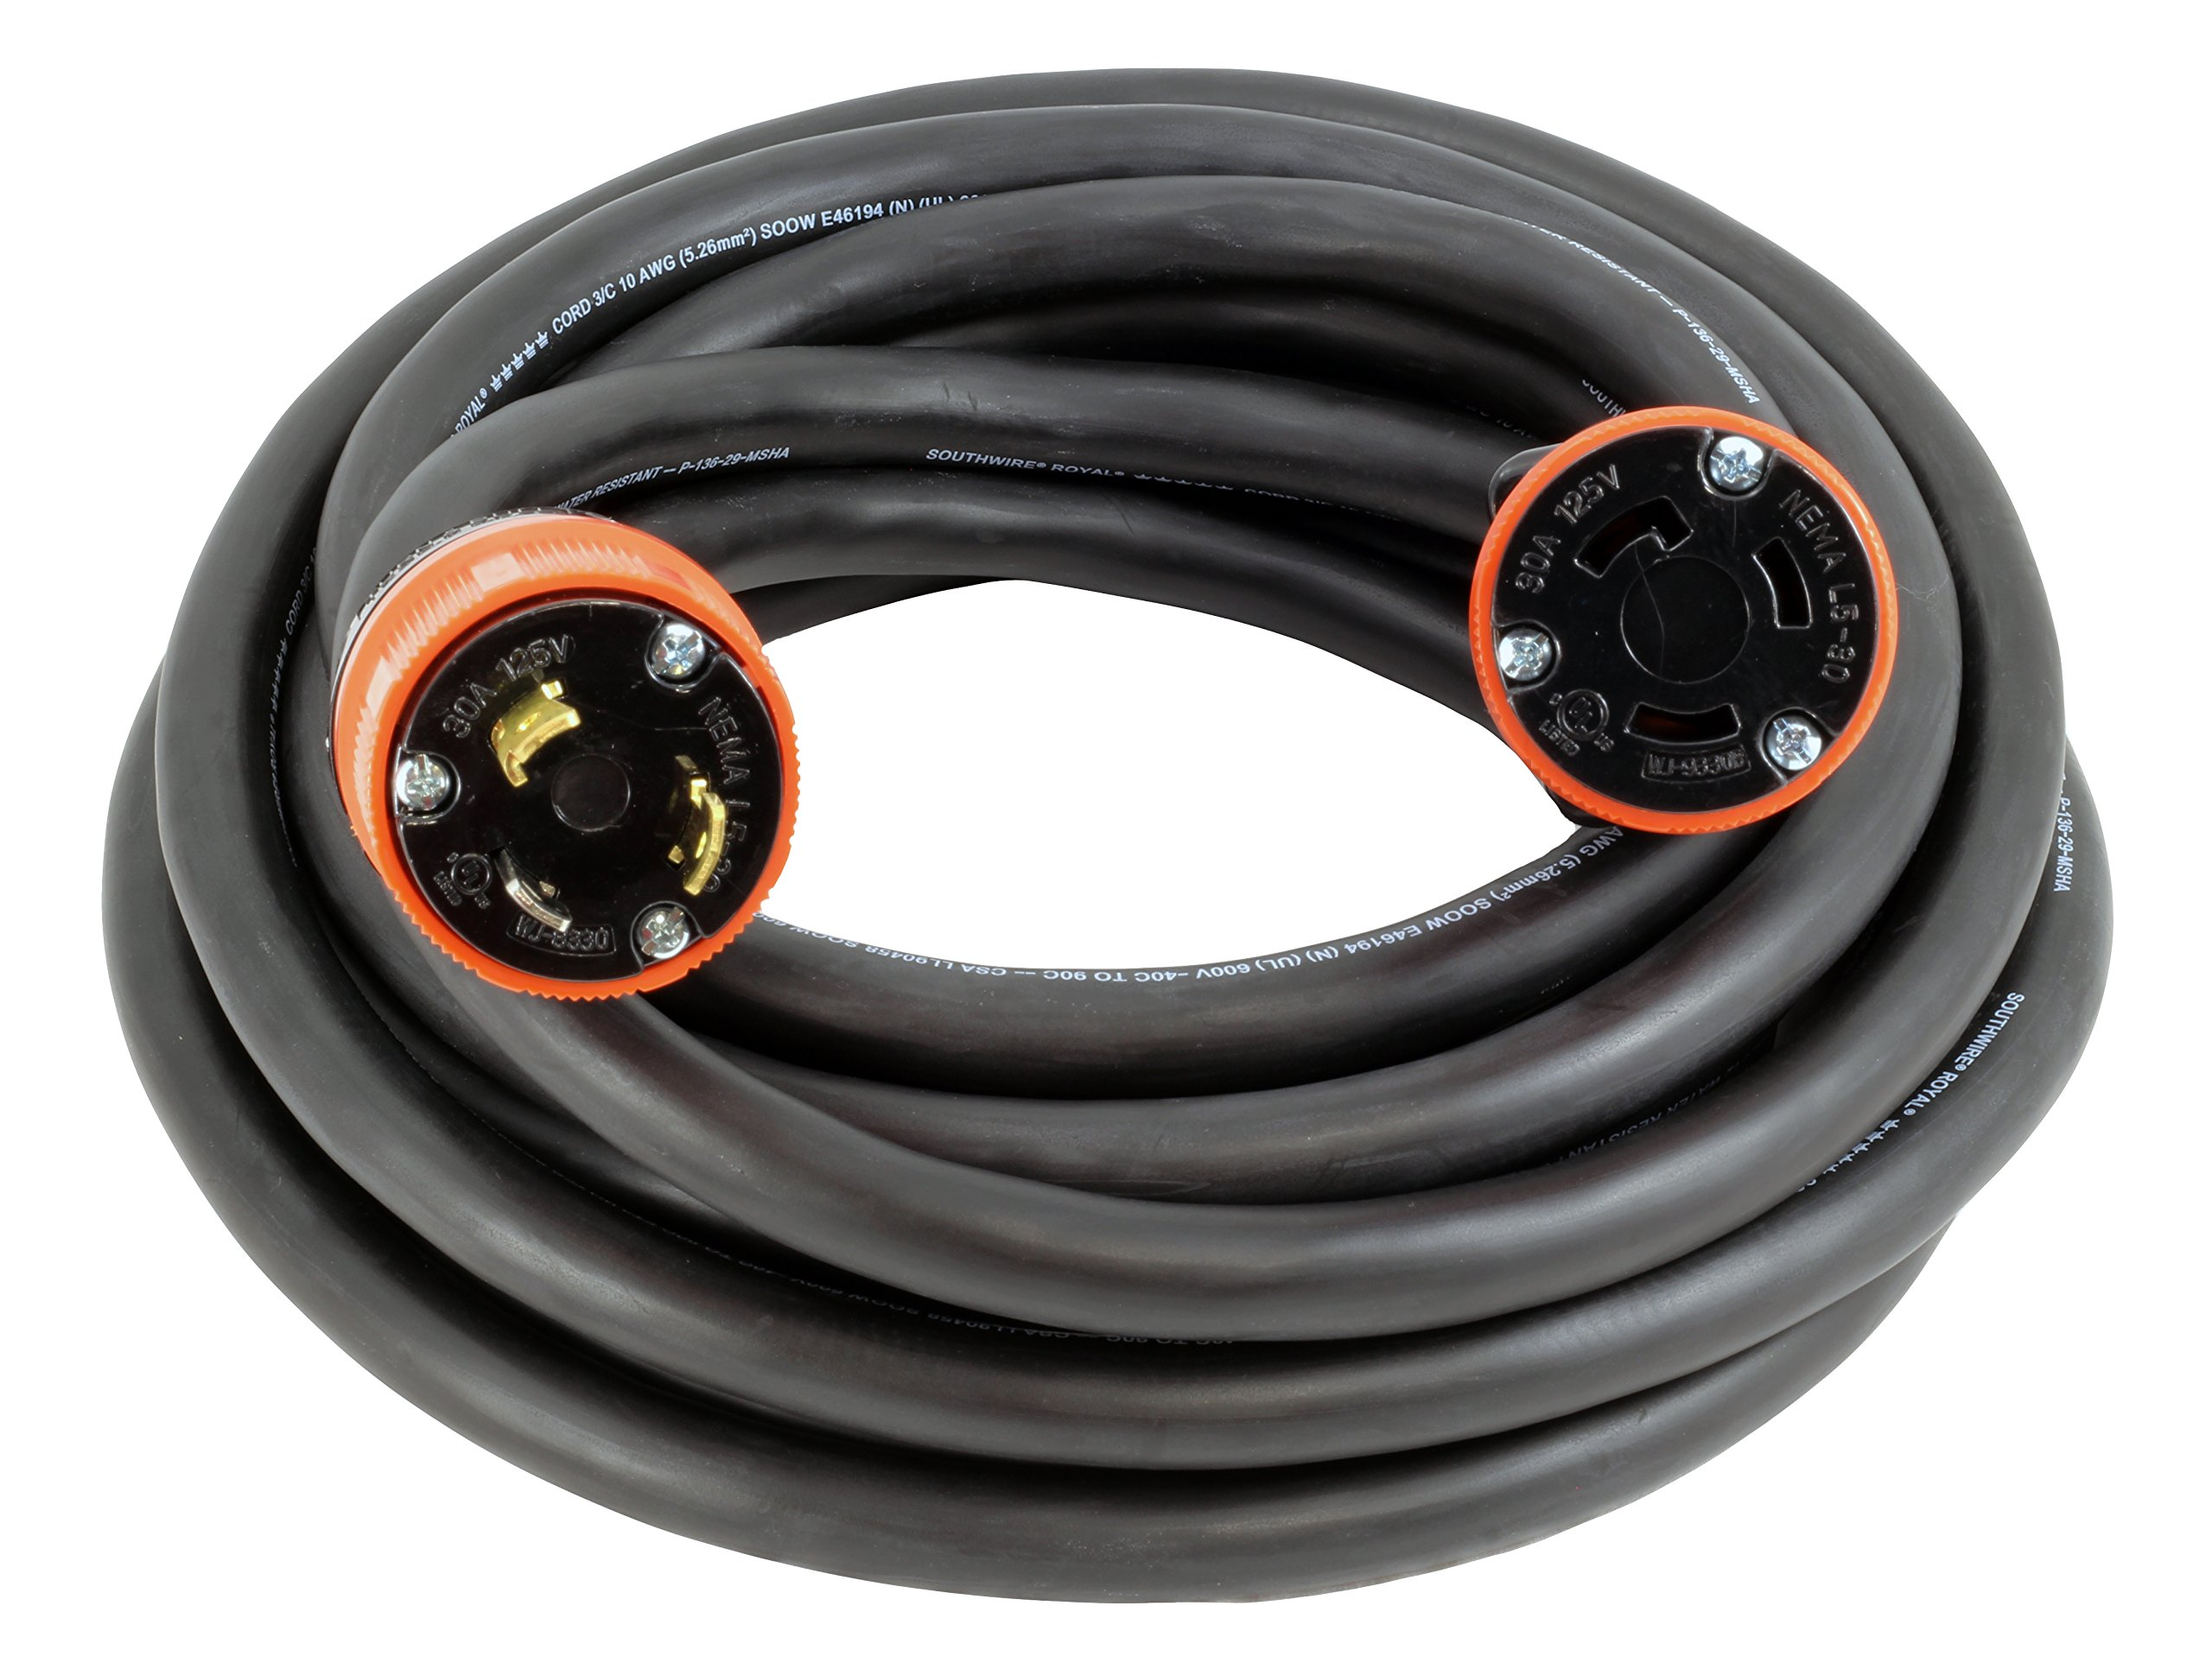 AC WORKS [L530PR-075] 75FT 10/3 3-Prong NEMA L5-30 30Amp 125Volt Generator Rubber Extension Cord